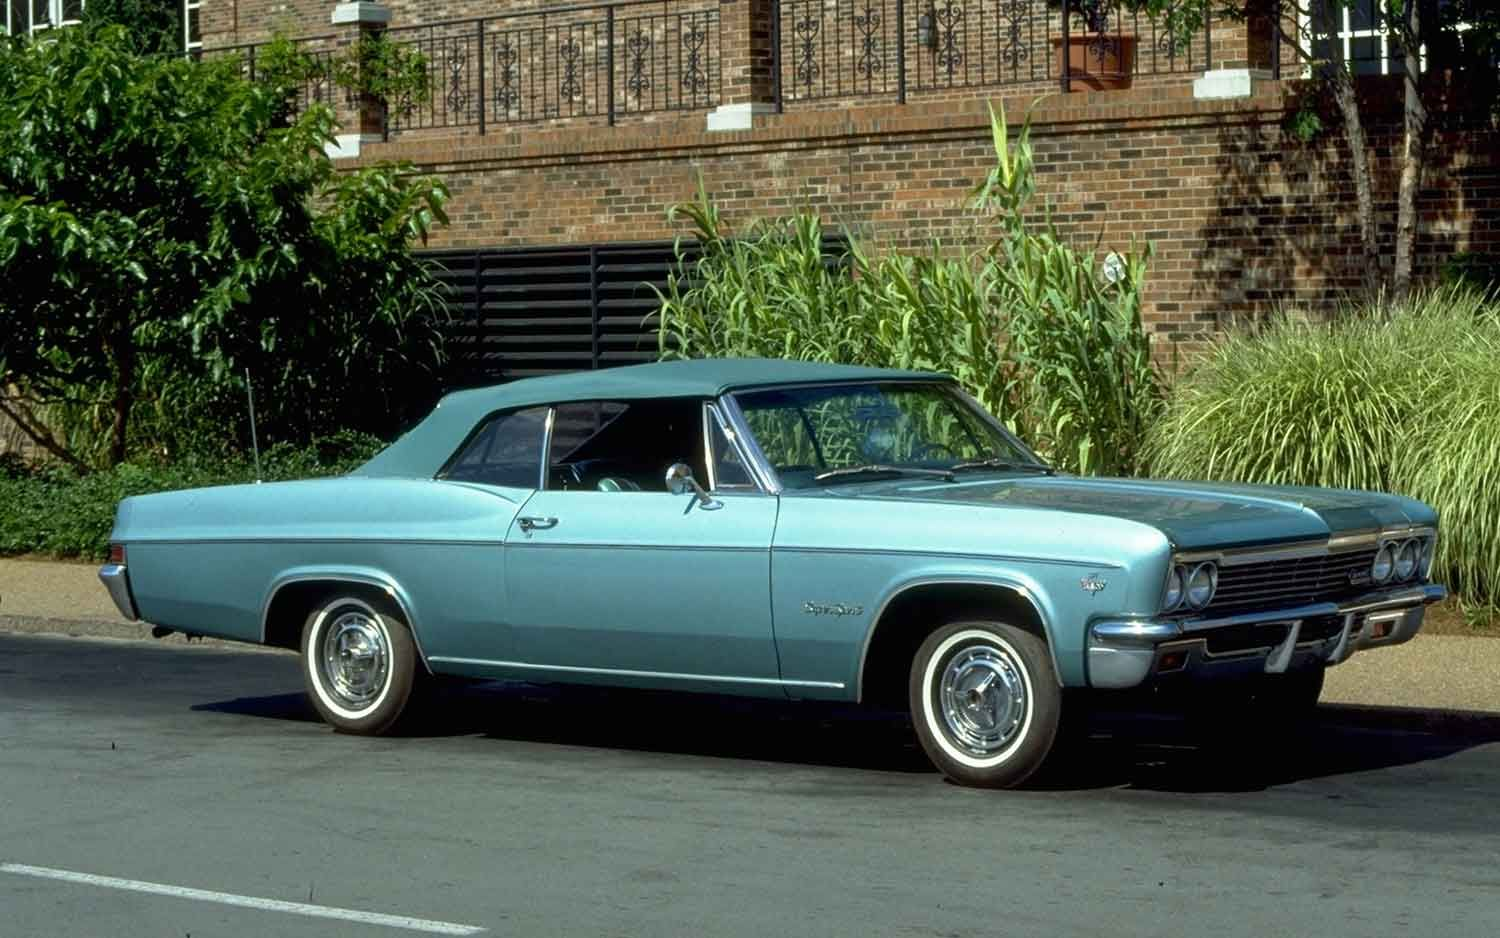 1966 Chevrolet Impala Ss Drop Top Pinterest Chevy